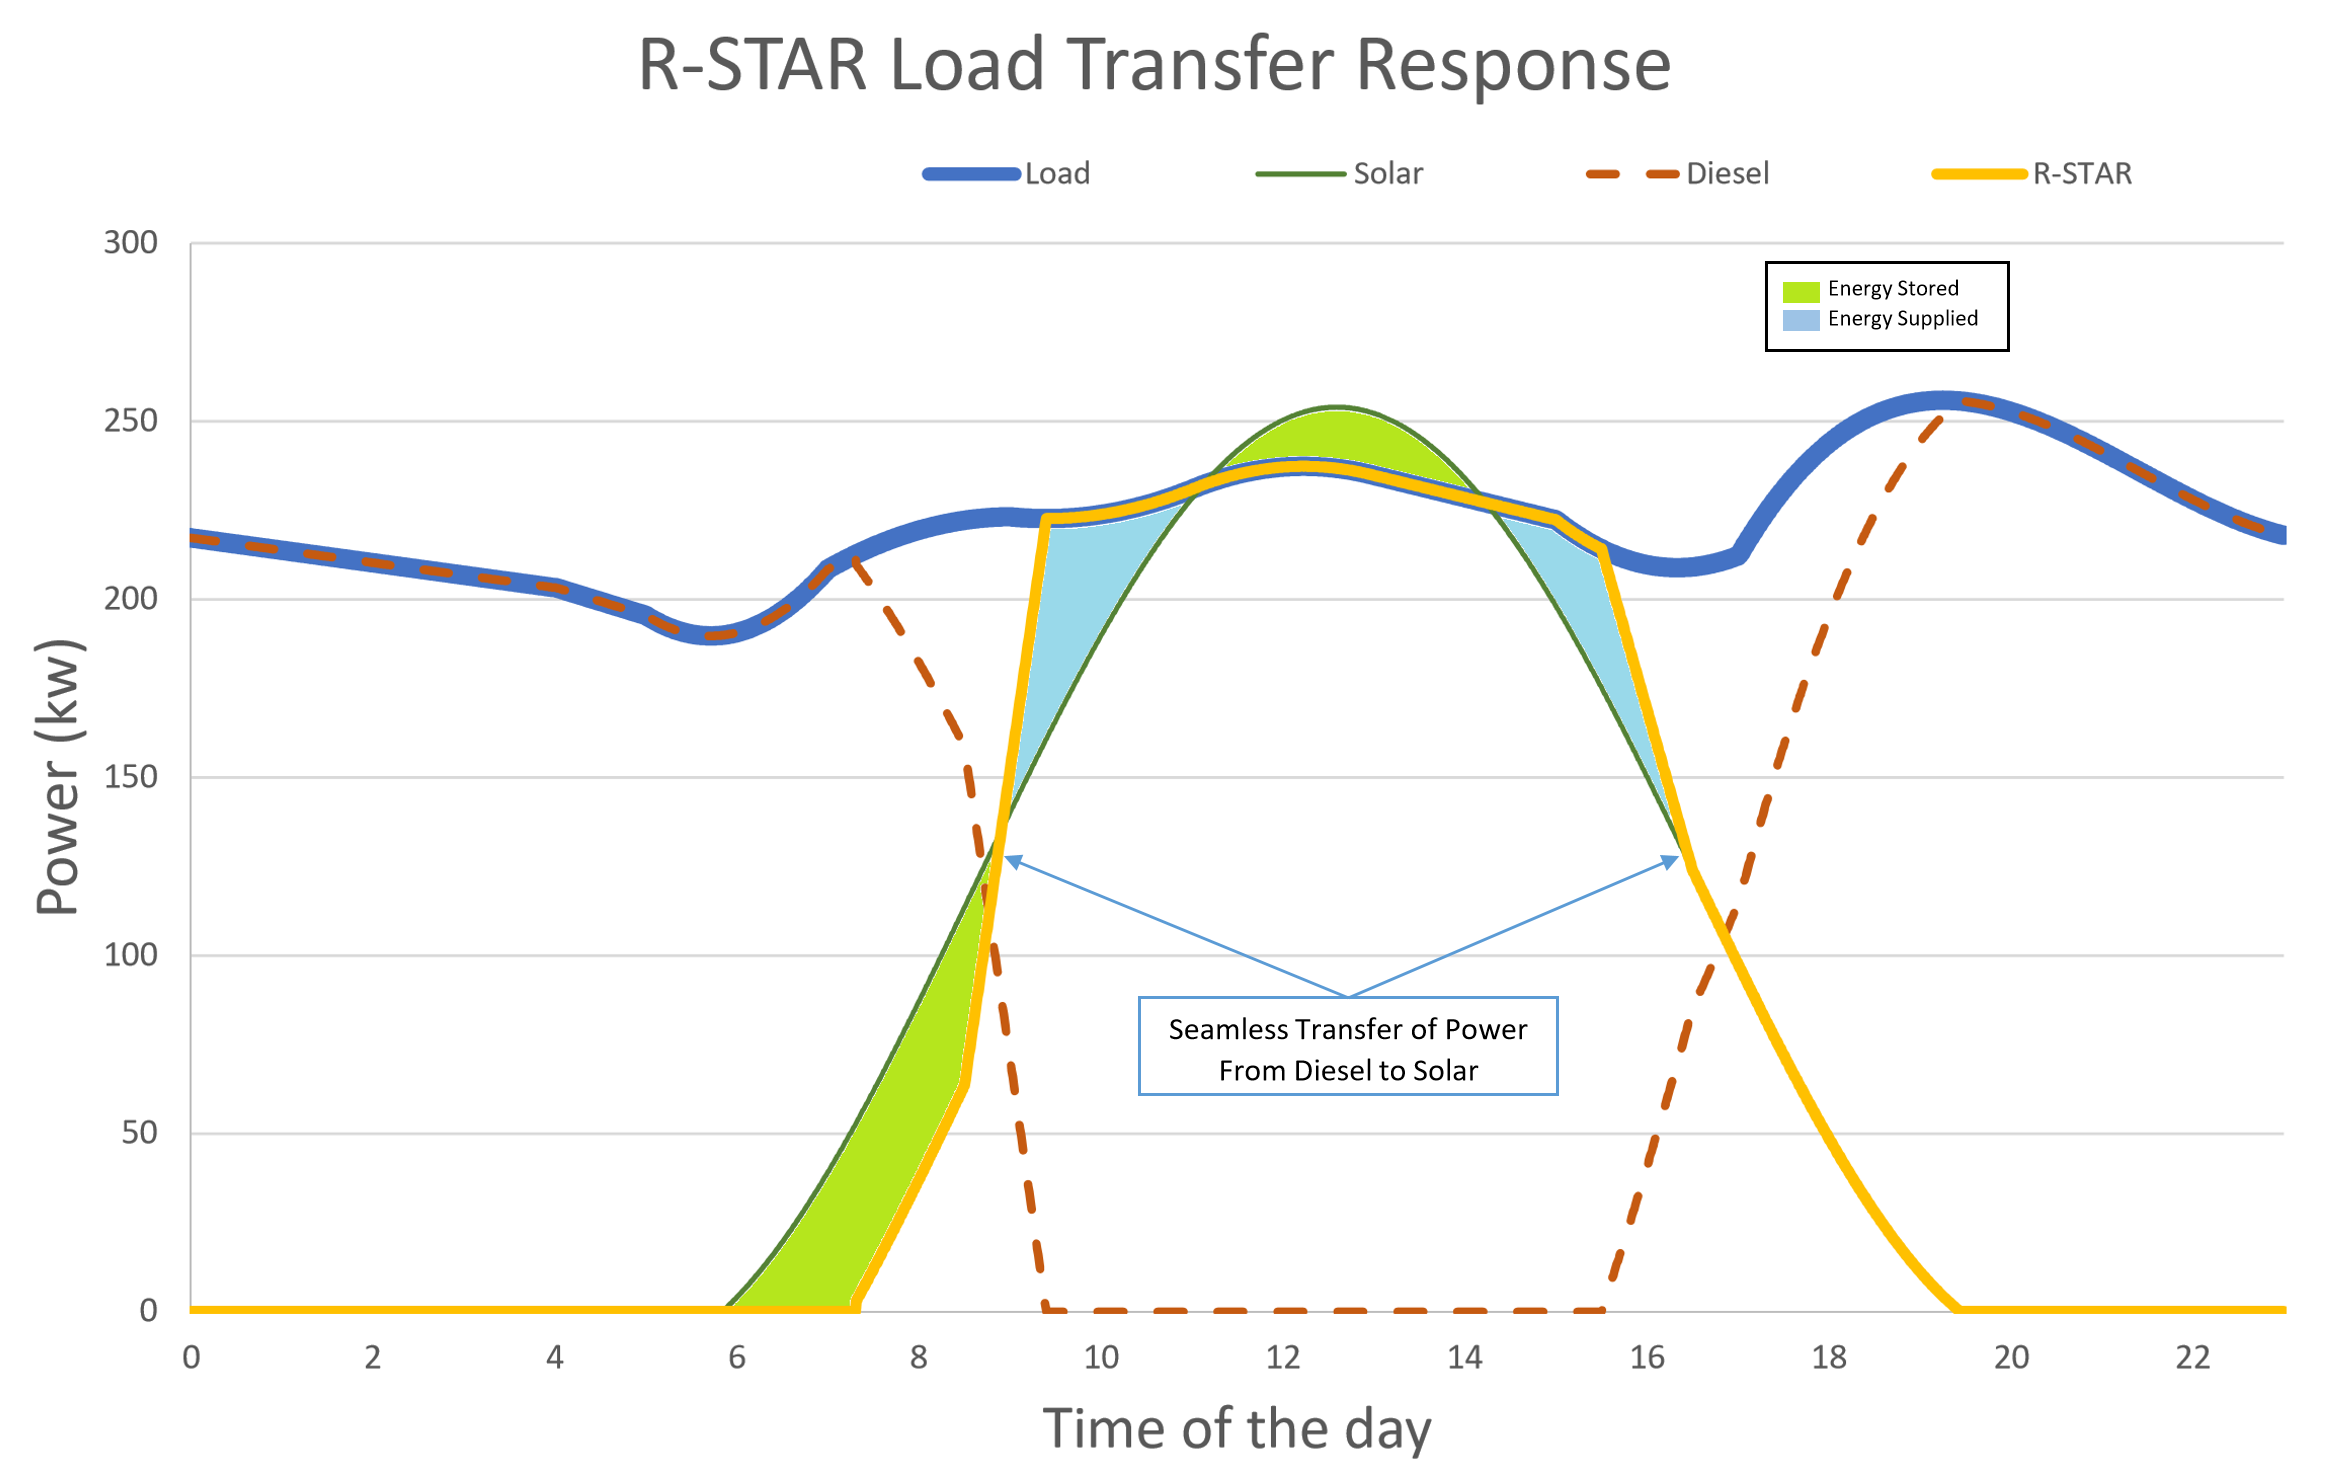 Seamless power transfer between Diesel Genset and R-STAR solar power in a 250kW system